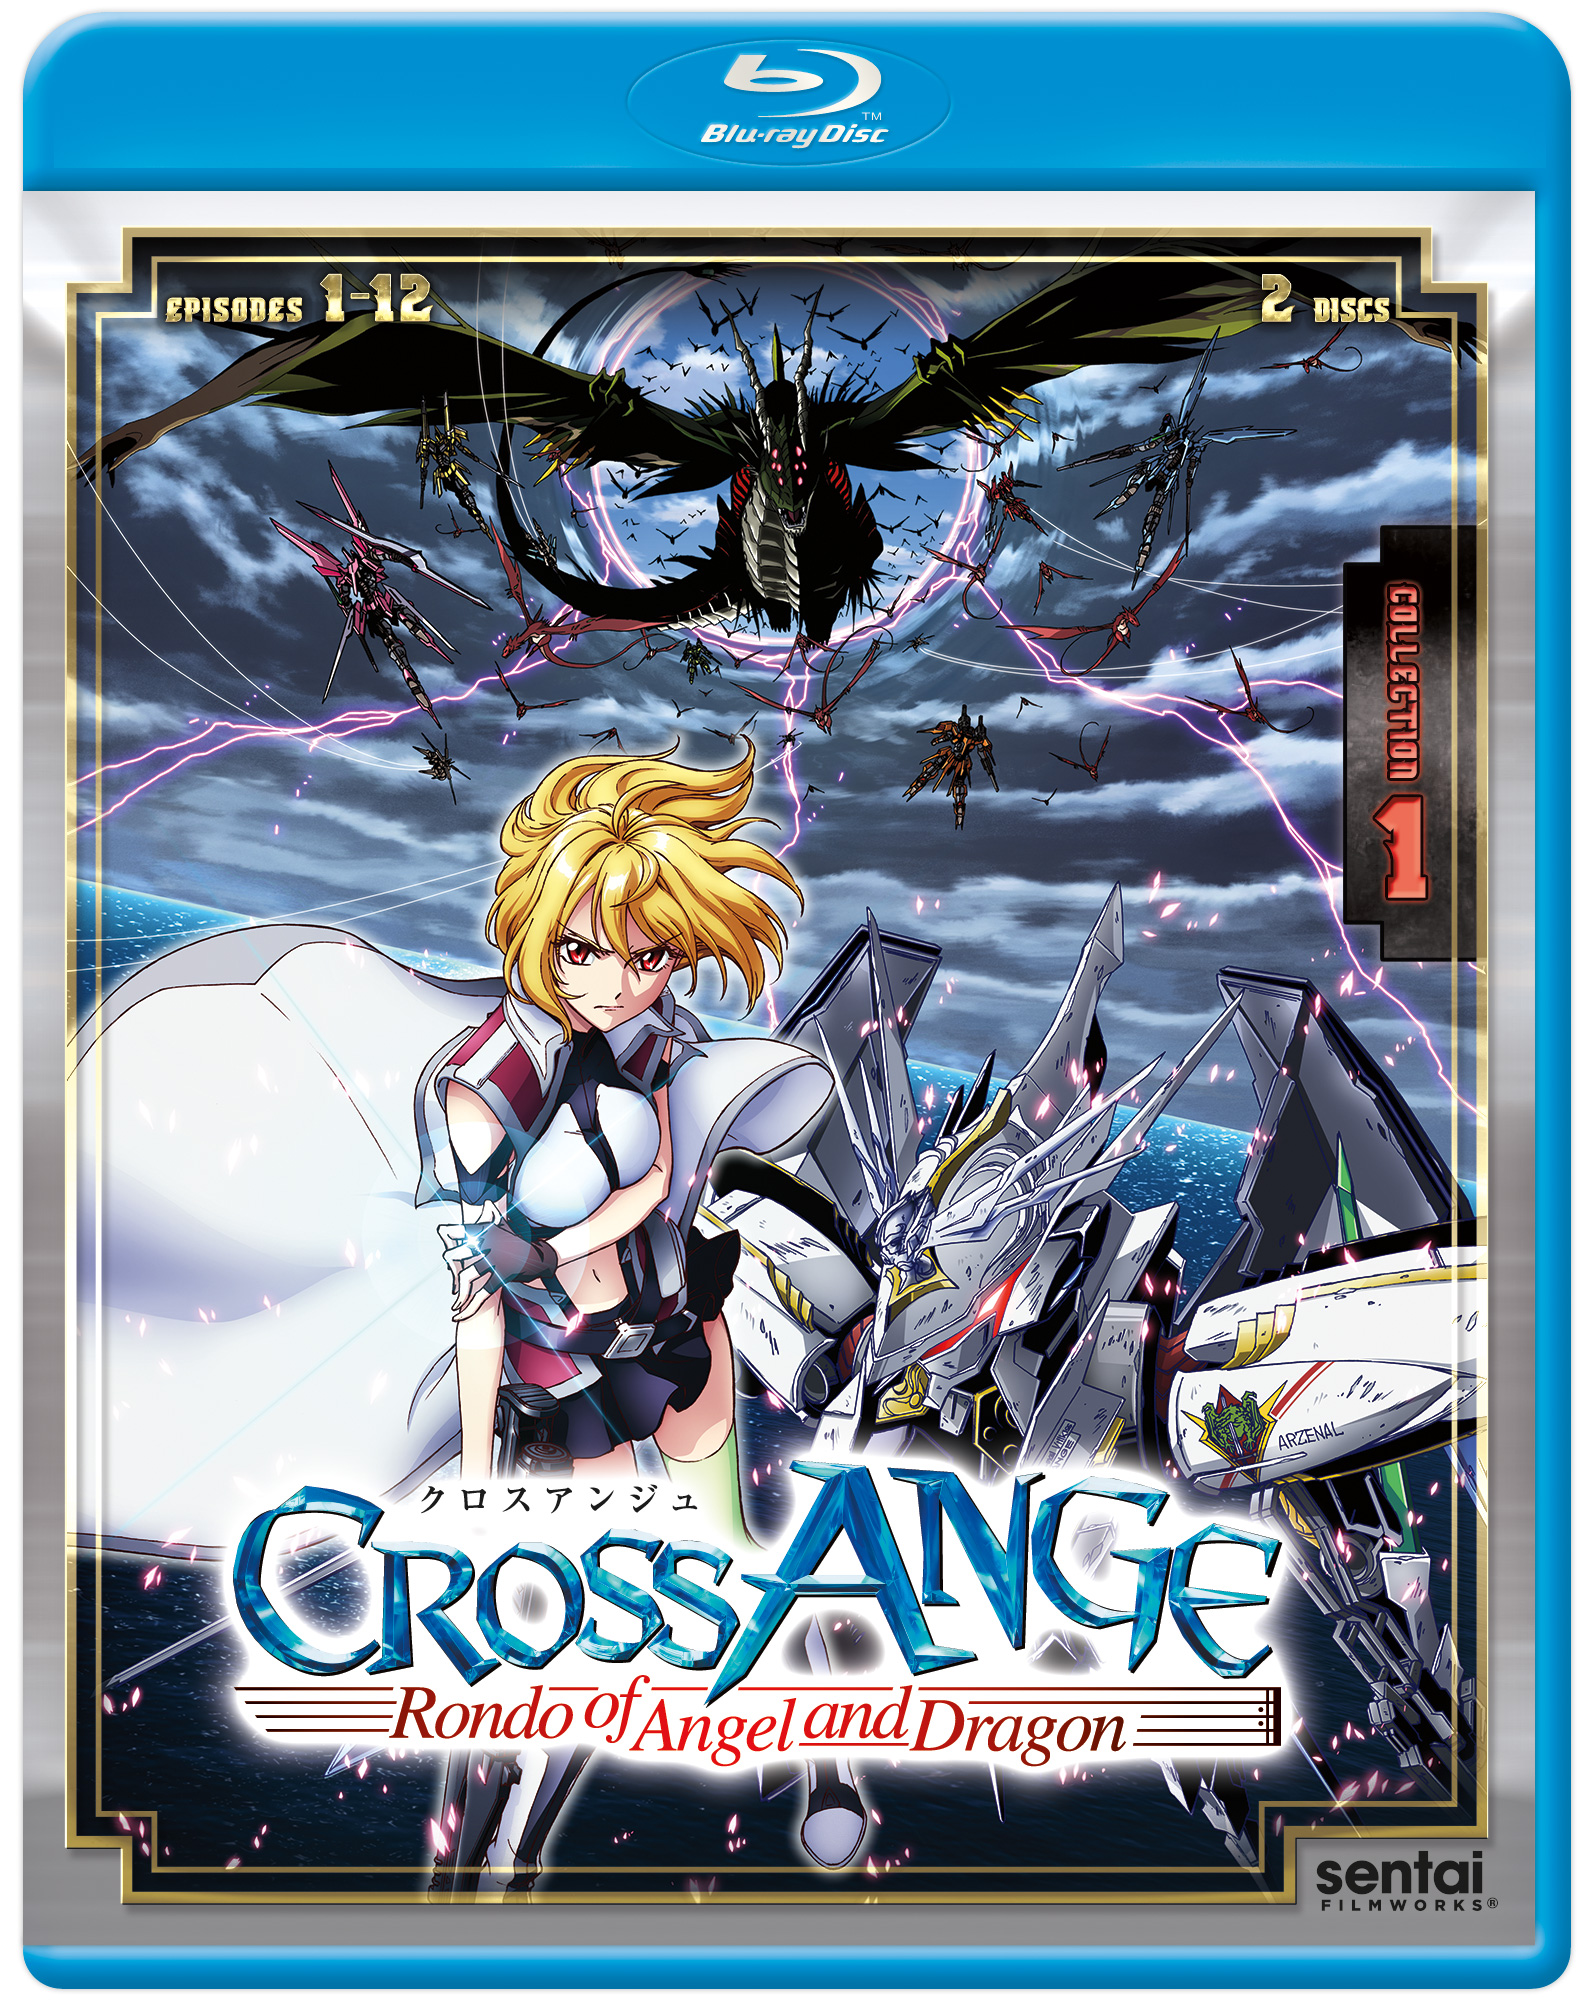 Cross Ange Rondo of Angels and Dragons Collection 1 Blu-ray